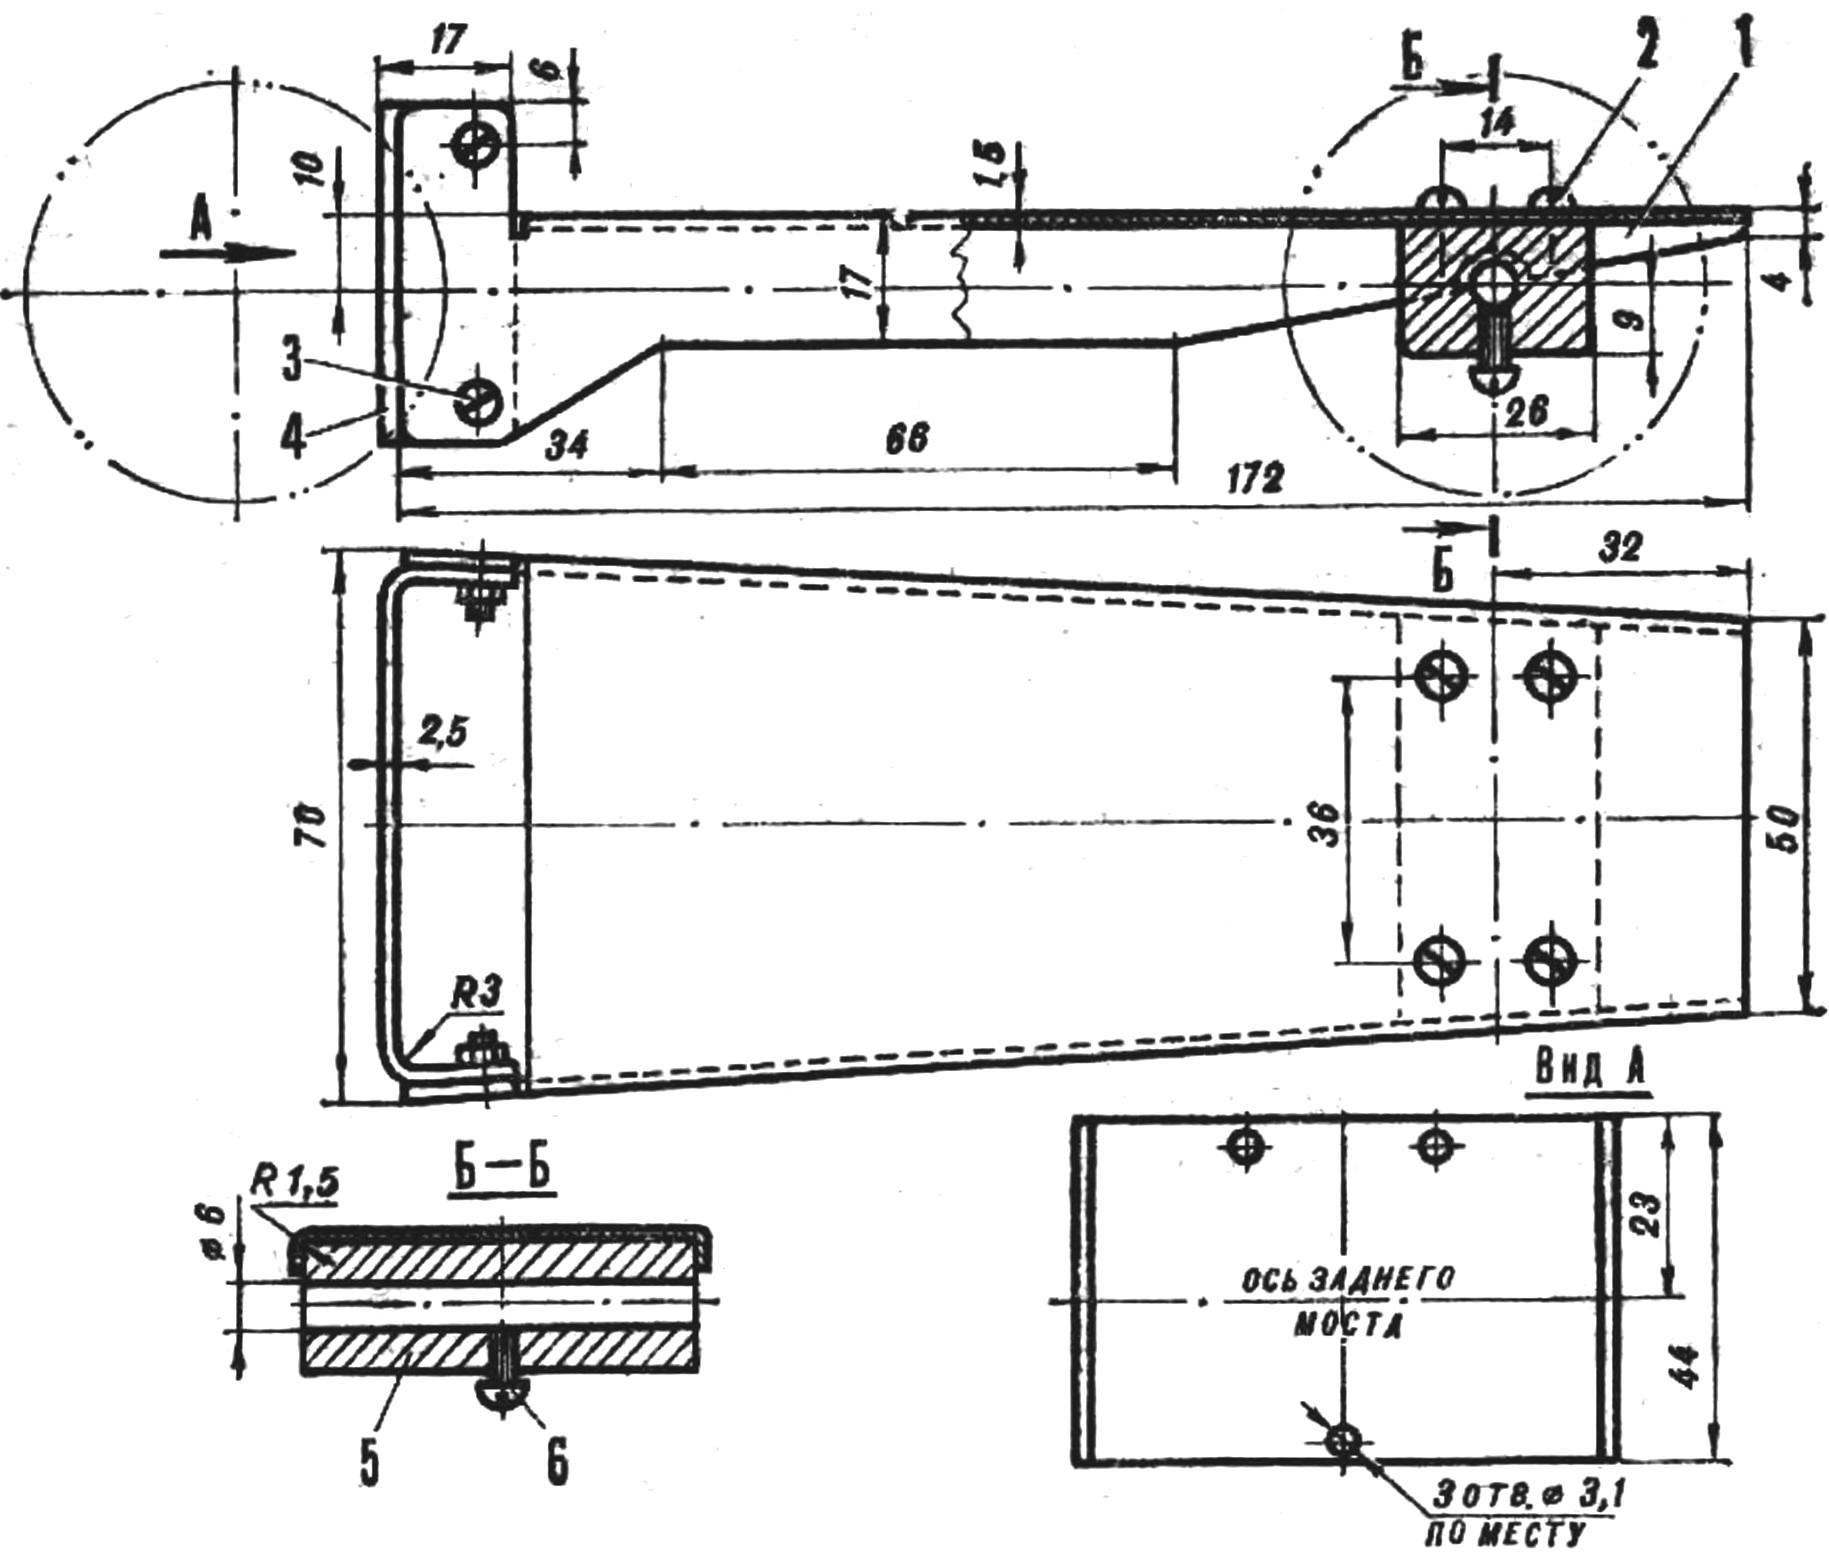 Fig. 2. The frame model in the collection